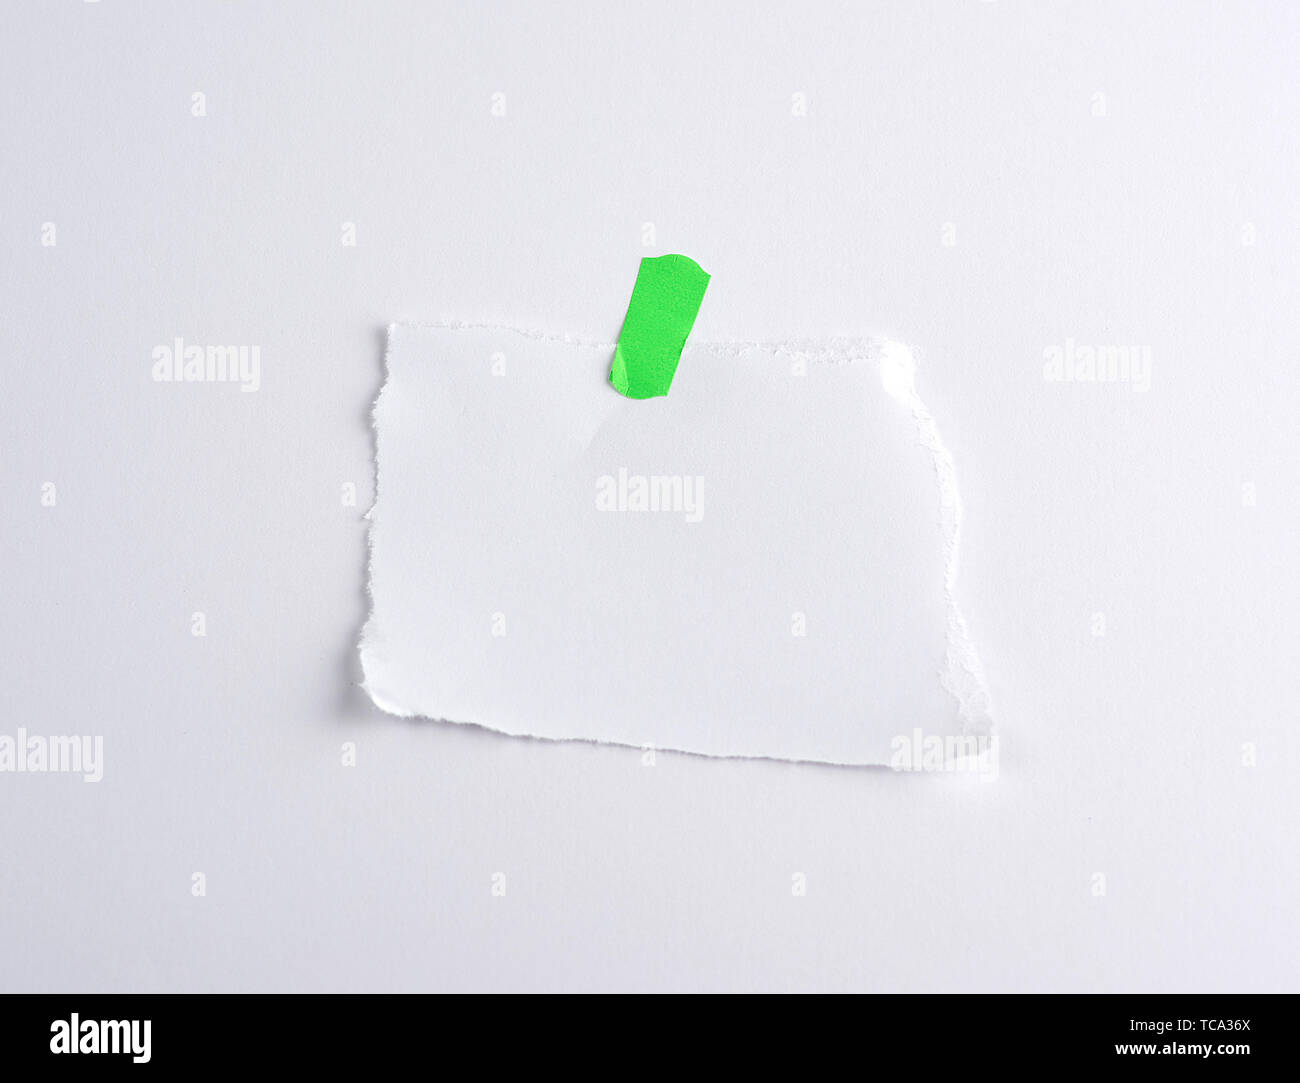 torn off white piece of paper glued to green velcro, white background - Stock Image